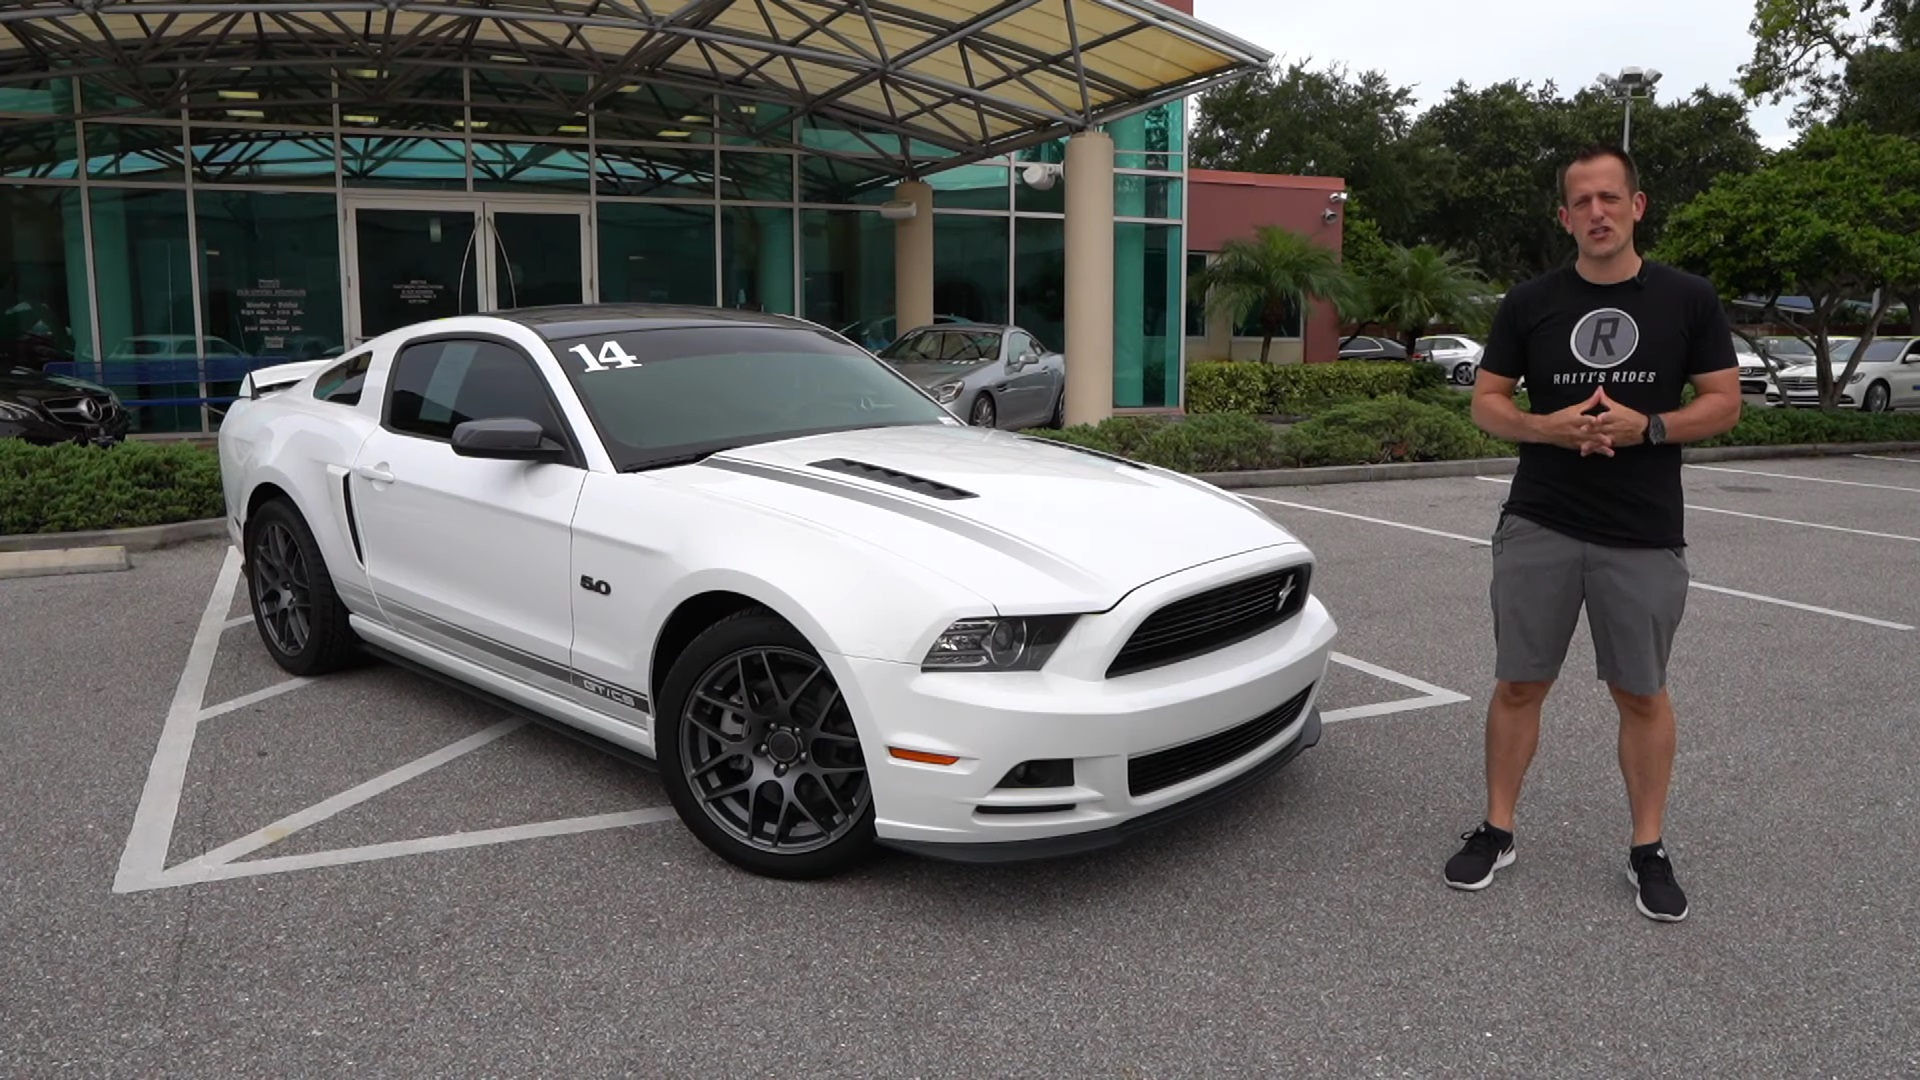 Video: Is This 2014 Mustang GT California Special The Right One To Buy?